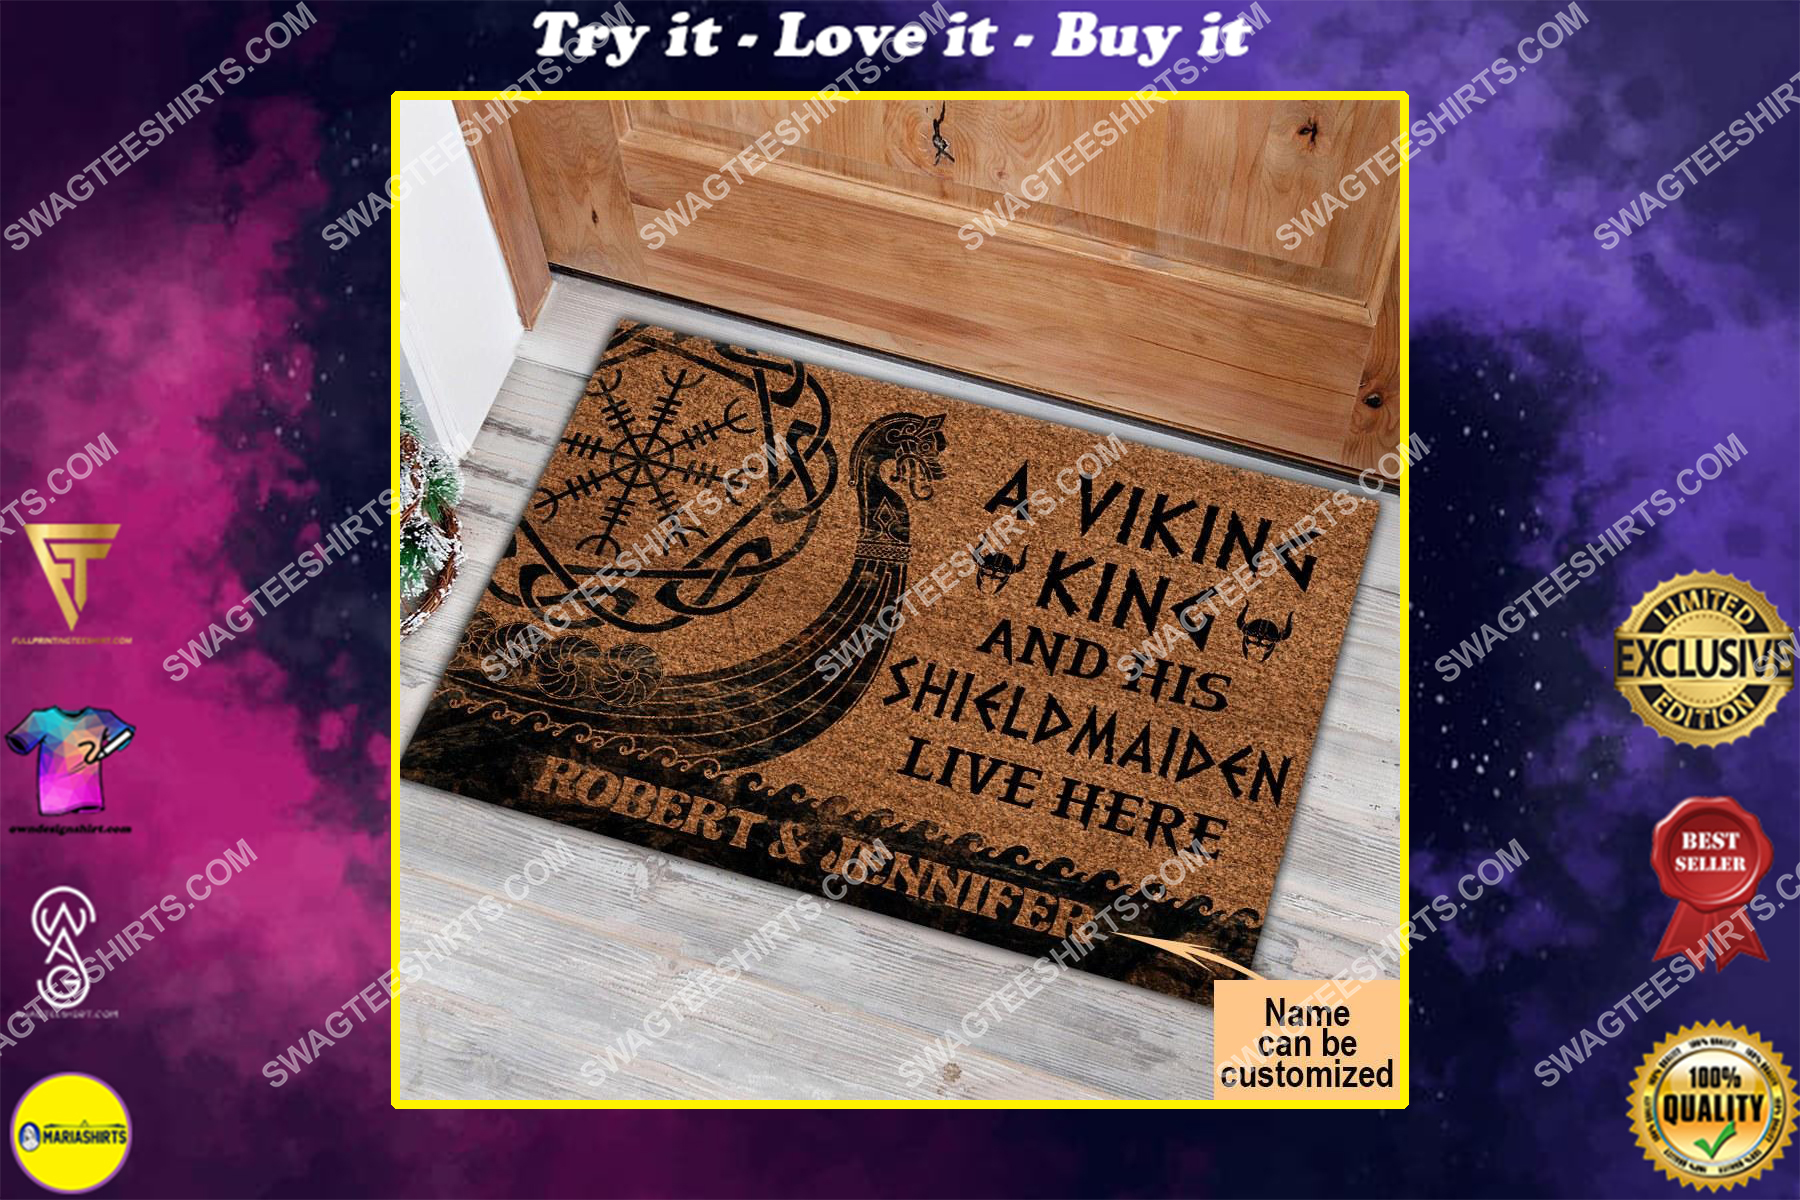 custom name a viking and his shieldmaiden live here full print doormat